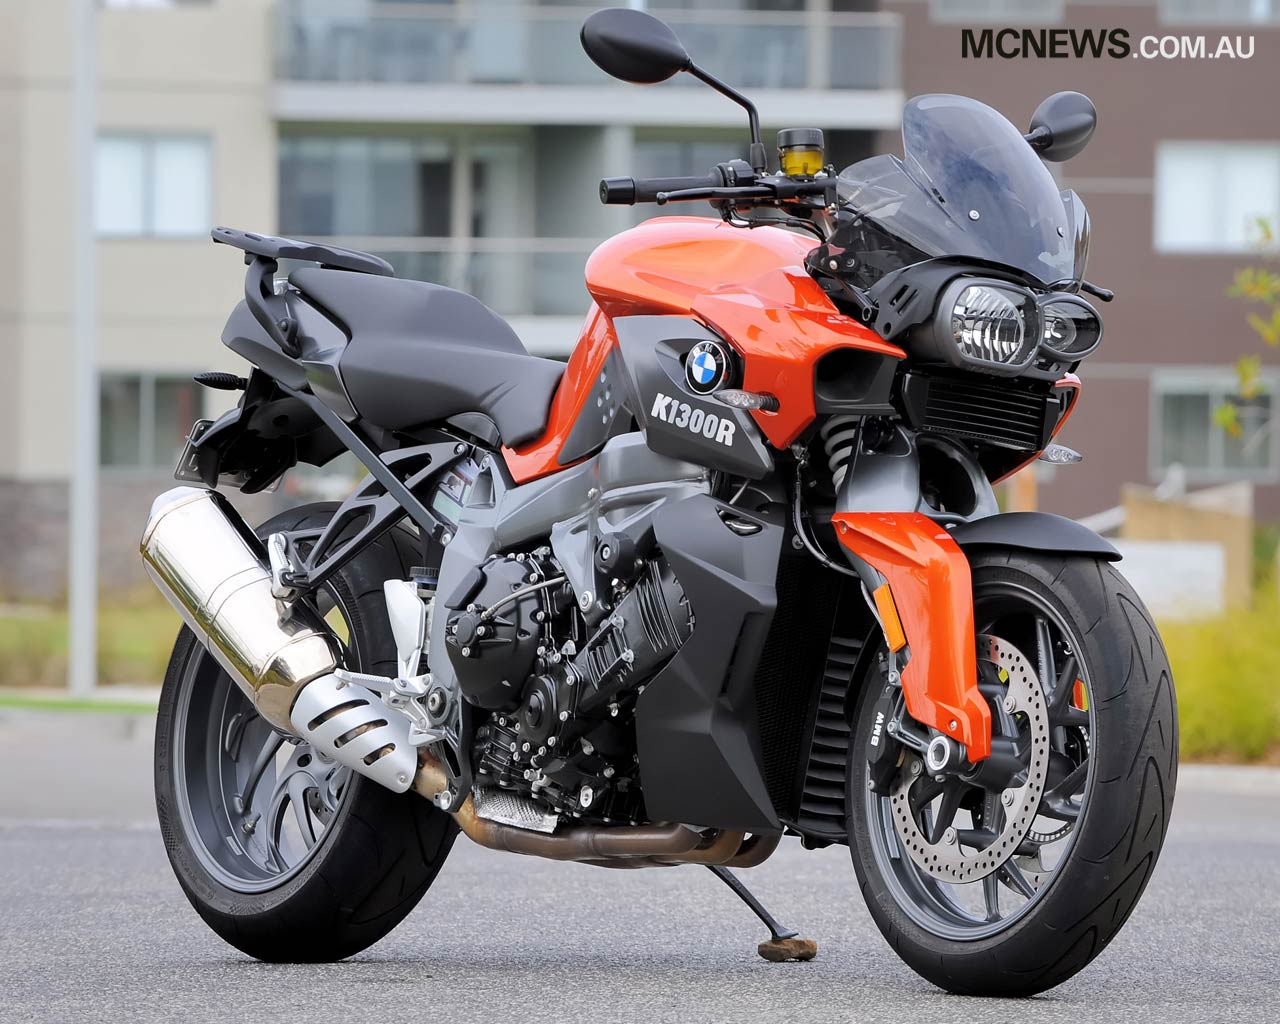 2009 BMW K1300R Insurance Information, pictures, specs